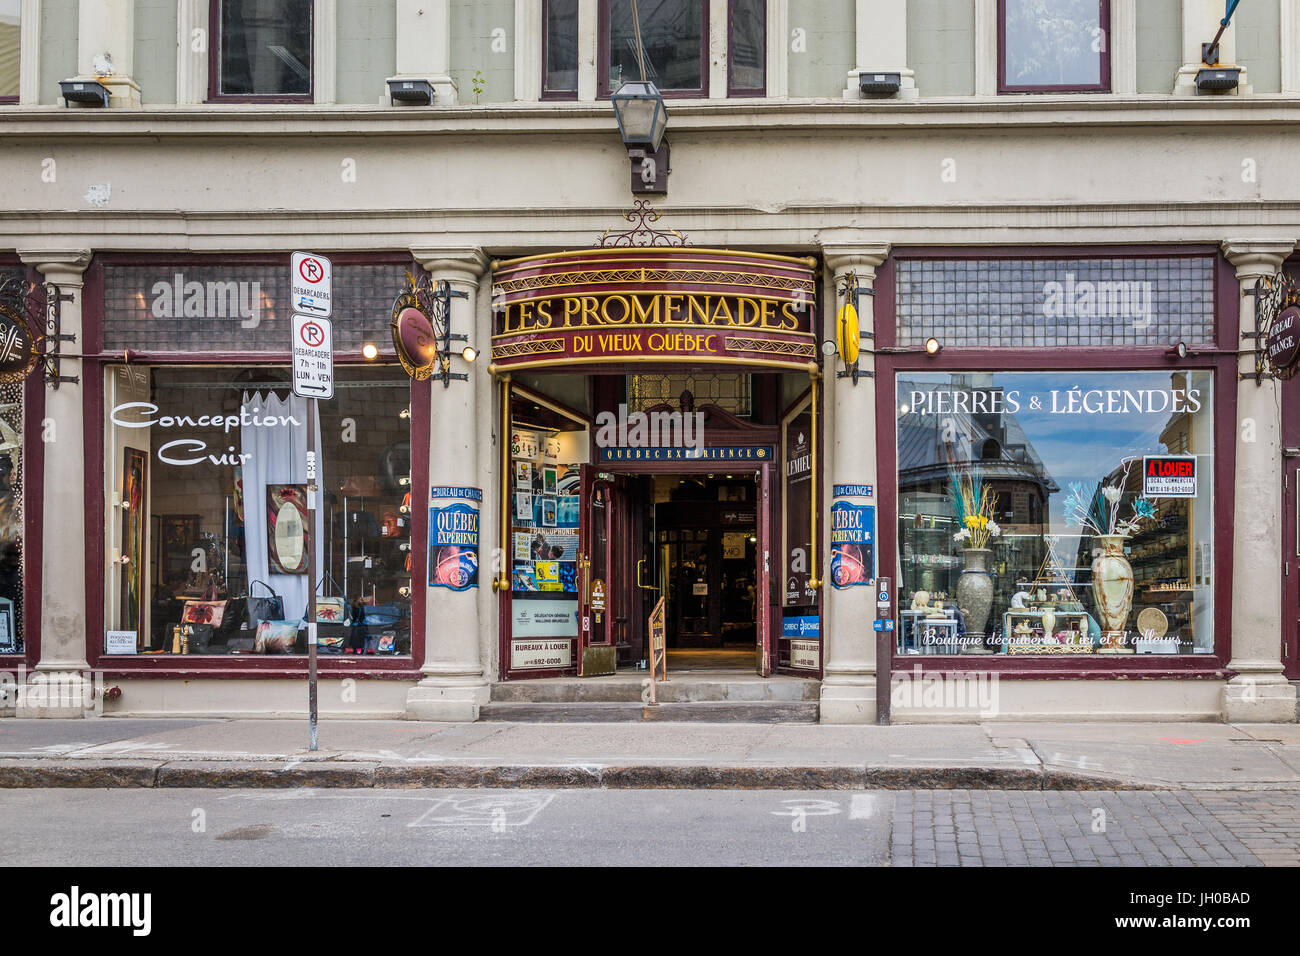 Quebec City, Canada - May 29, 2017: Old town street with shops and stores called Les Promenades with stone wall - Stock Image